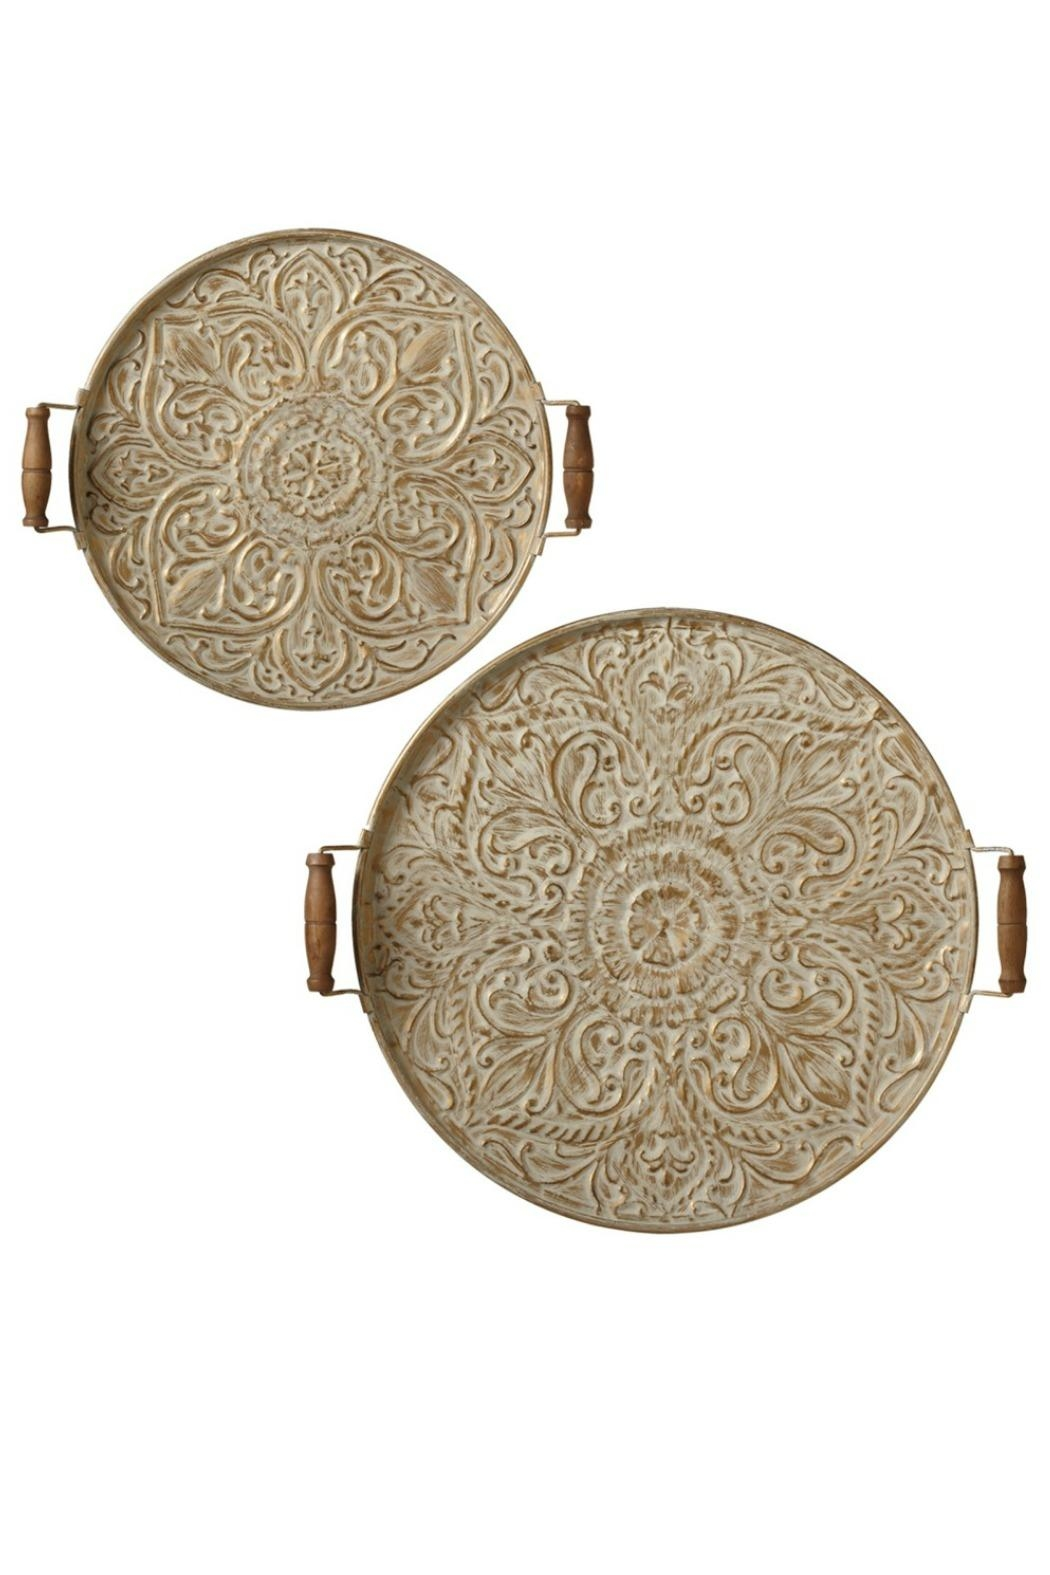 Round Wall Art Decor : Walker s round wall decor set from alabama tiques